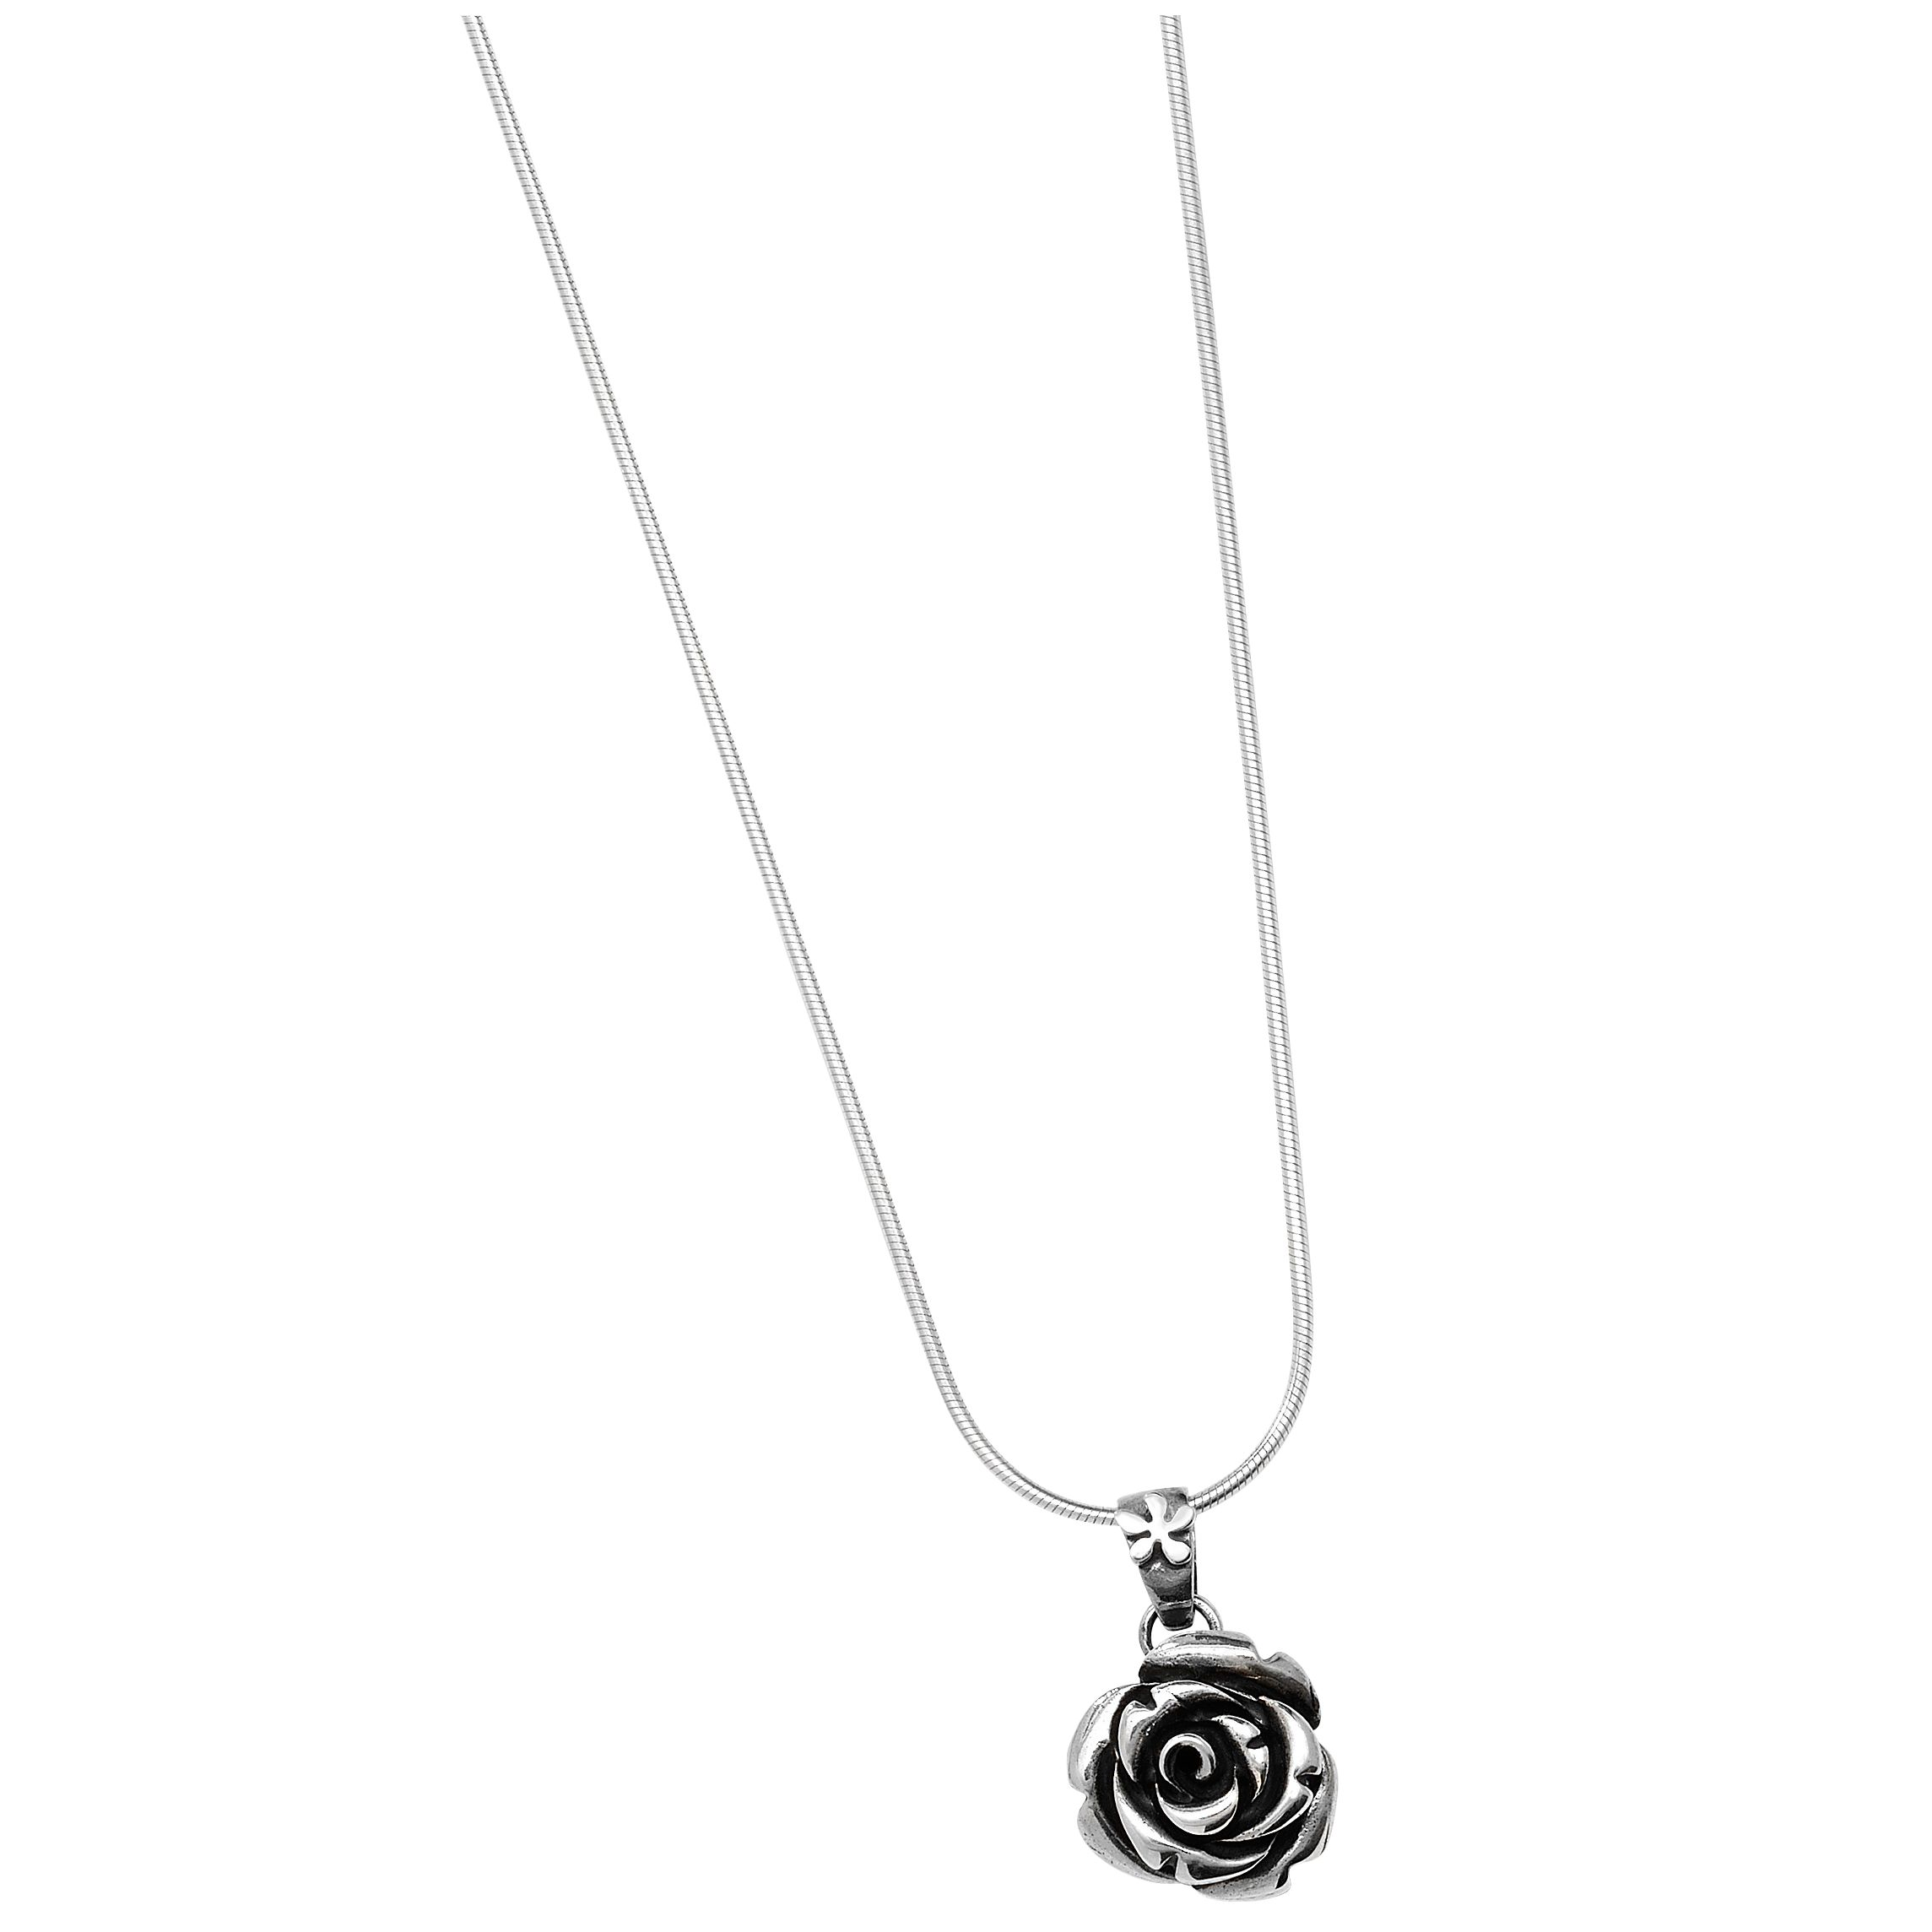 Linda Macdonald Large Silver Rose Pendant Necklace